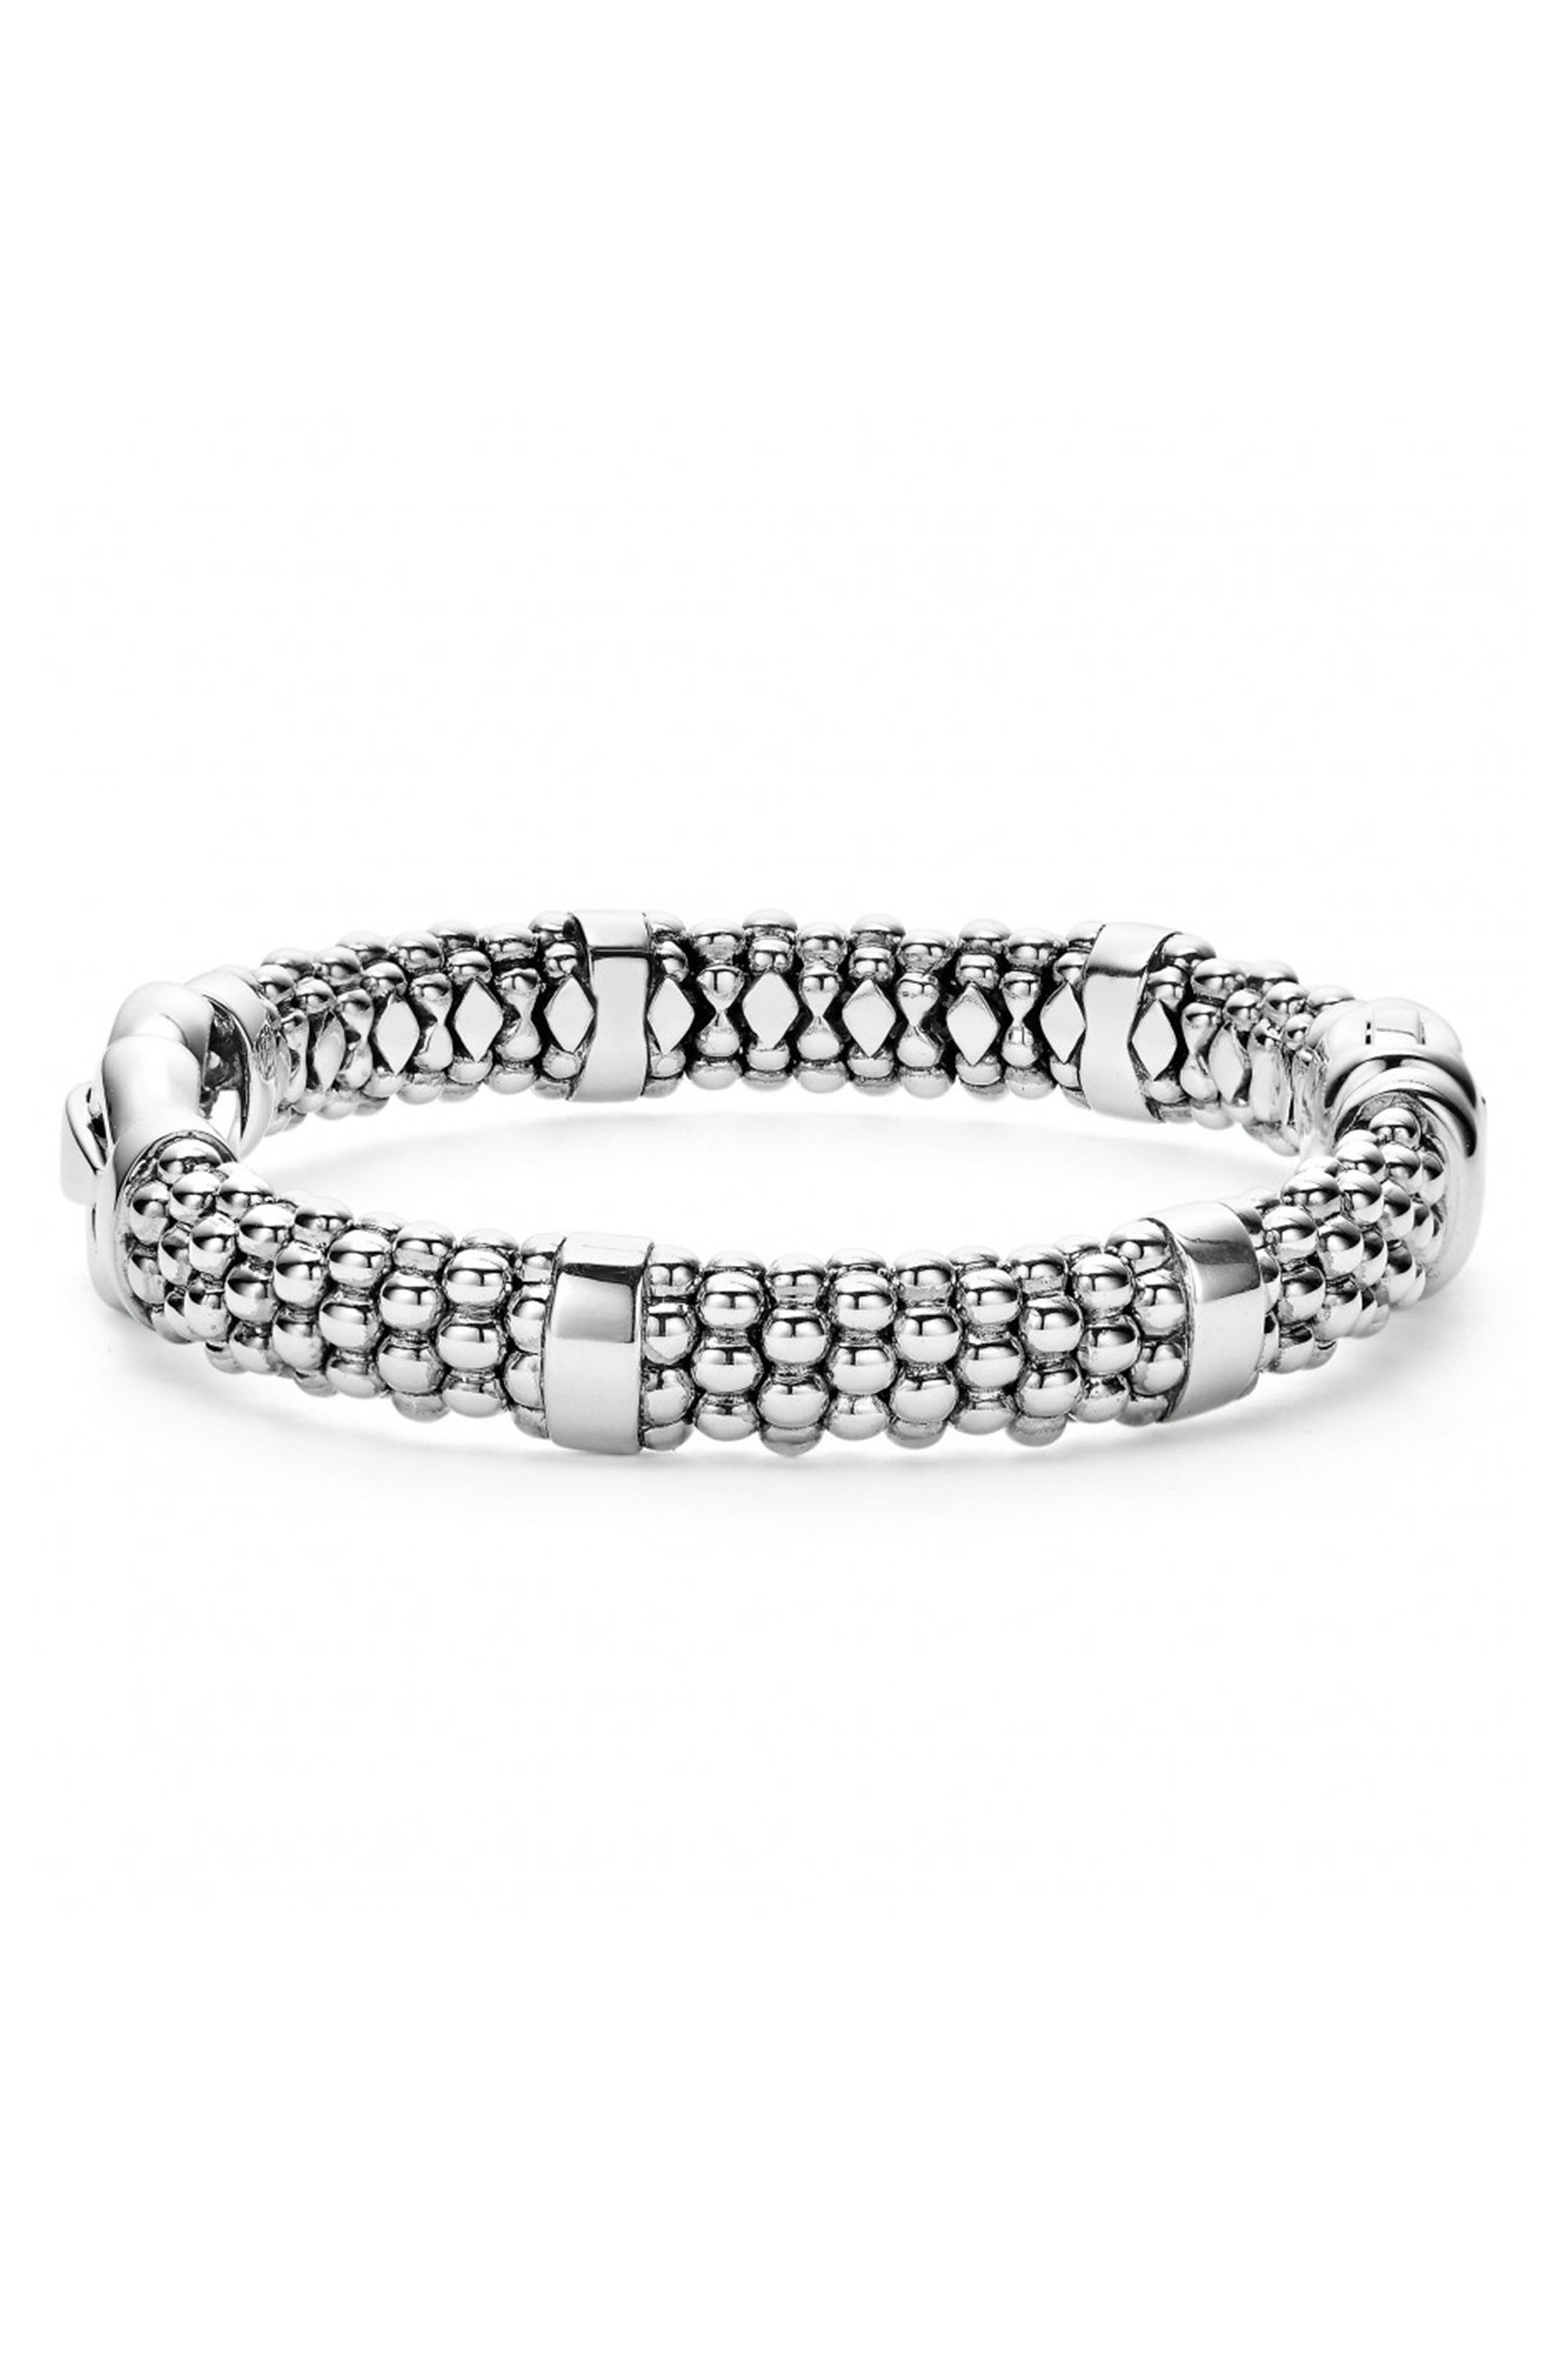 'Derby' Caviar Rope Bracelet,                             Alternate thumbnail 5, color,                             STERLING SILVER